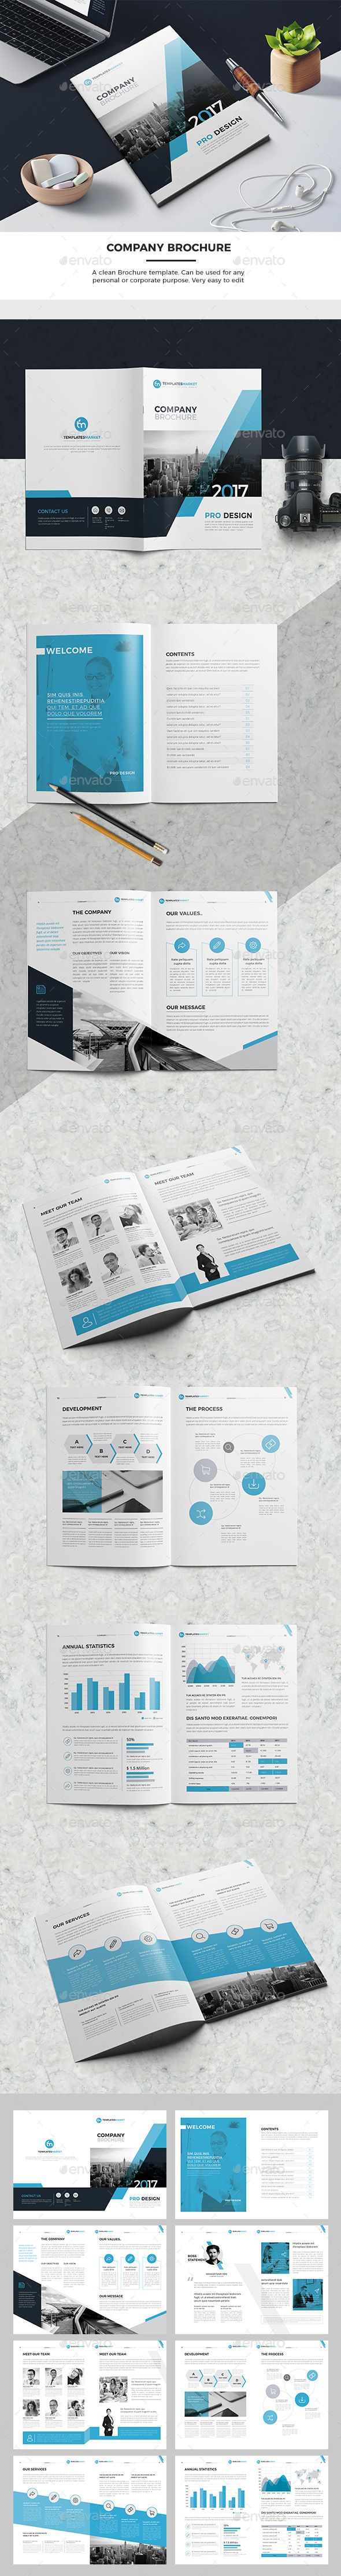 Corporate Business Company Brochure Template - #Corporate #Business #Company #Brochure #Template #Design. Download here: https://graphicriver.net/item/company-brochure/19525919?ref=yinkira